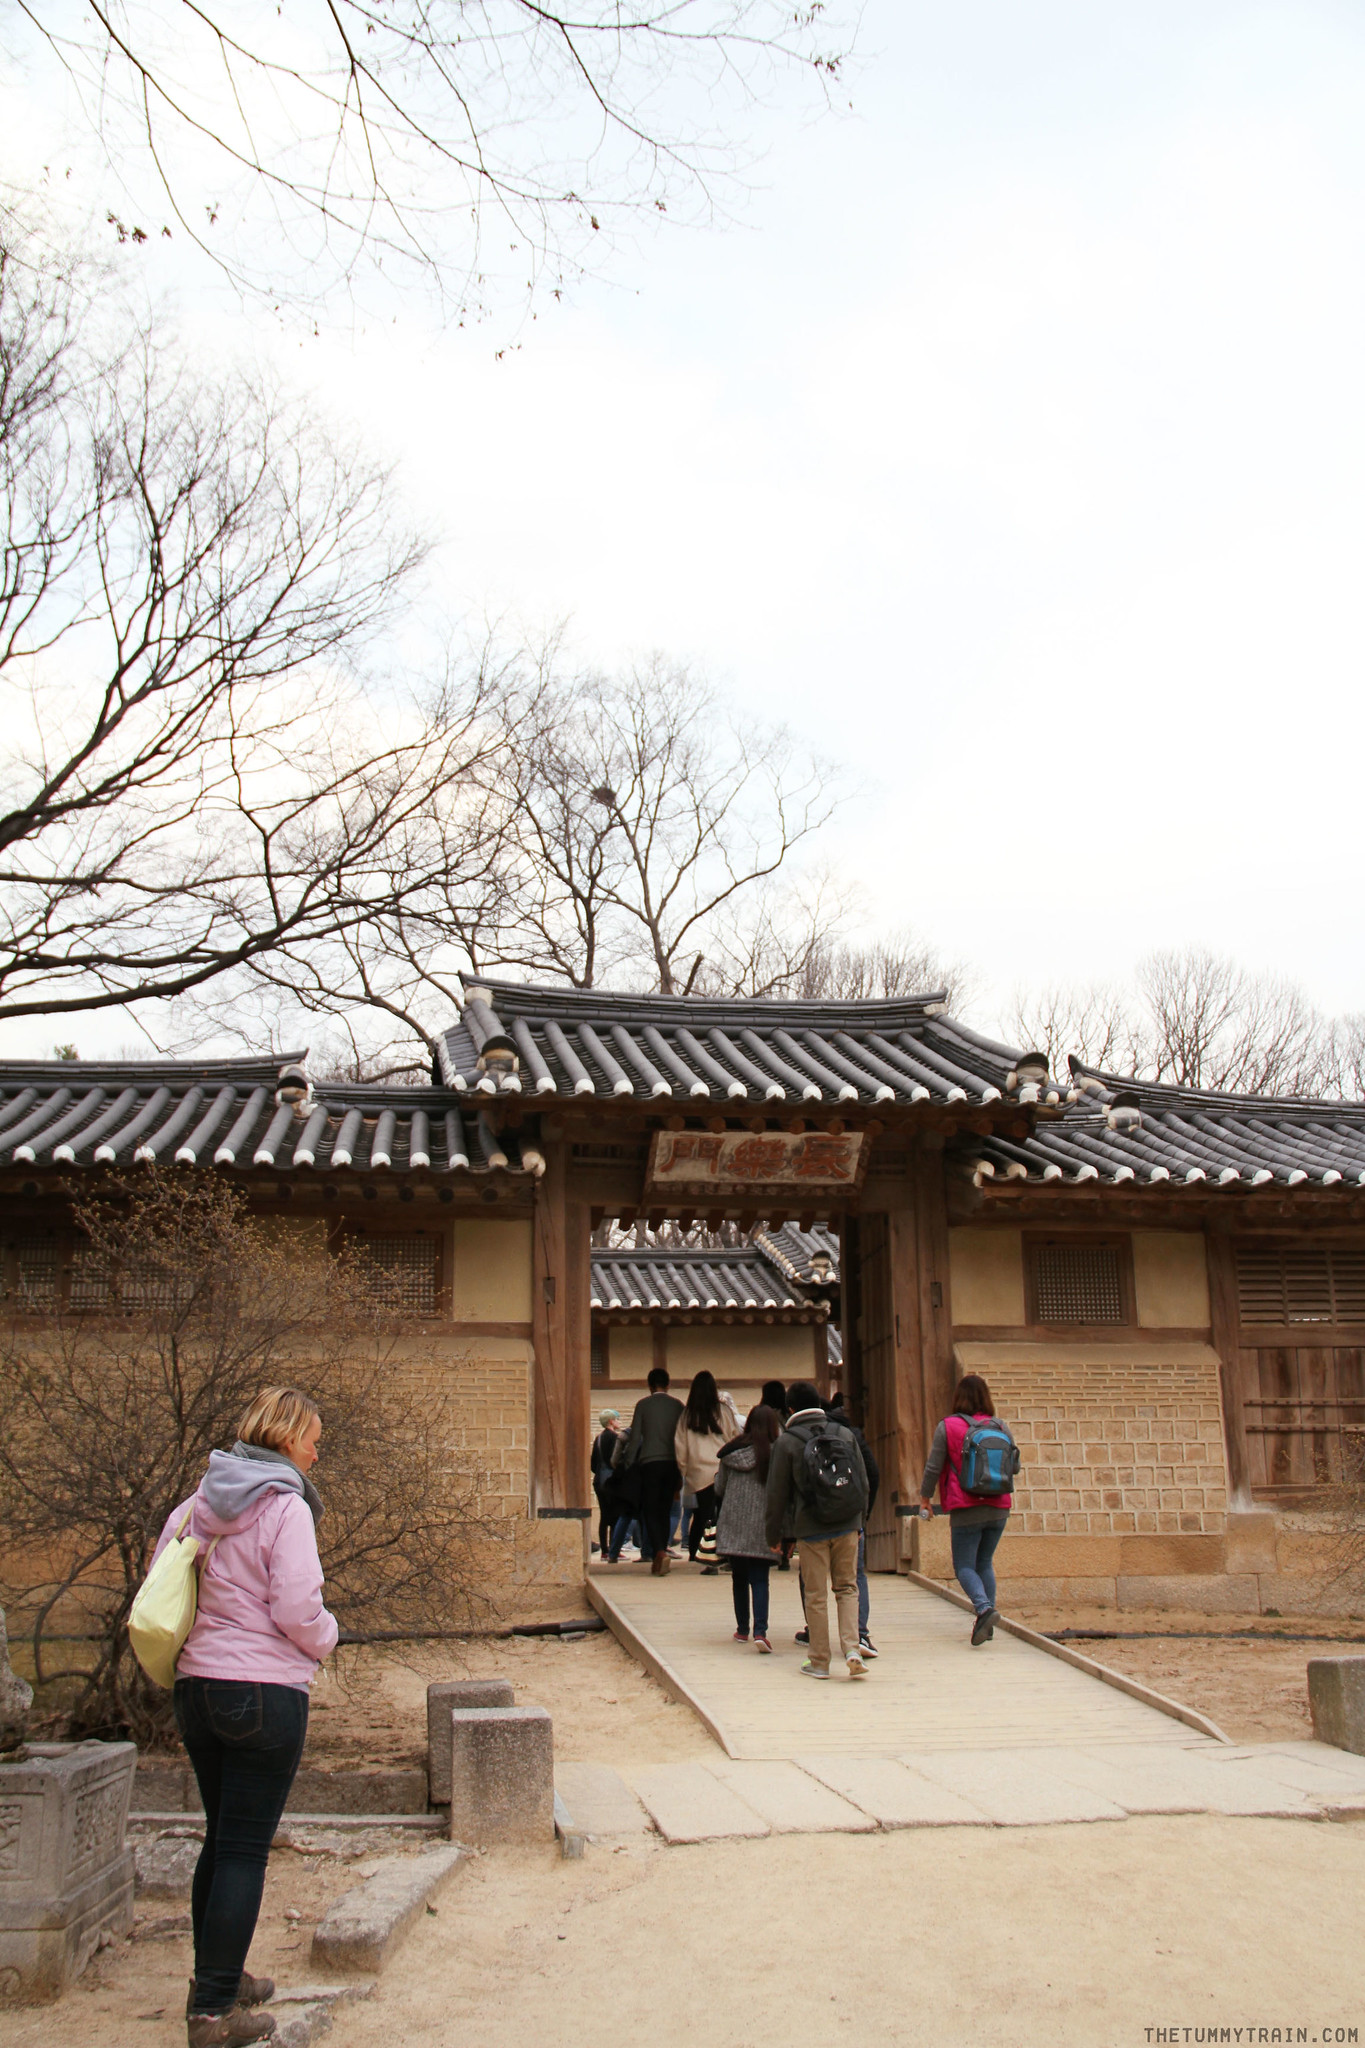 33373440142 66dbc61f2d k - Seoul-ful Spring 2016: Greeting the first blooms at Changdeokgung Palace